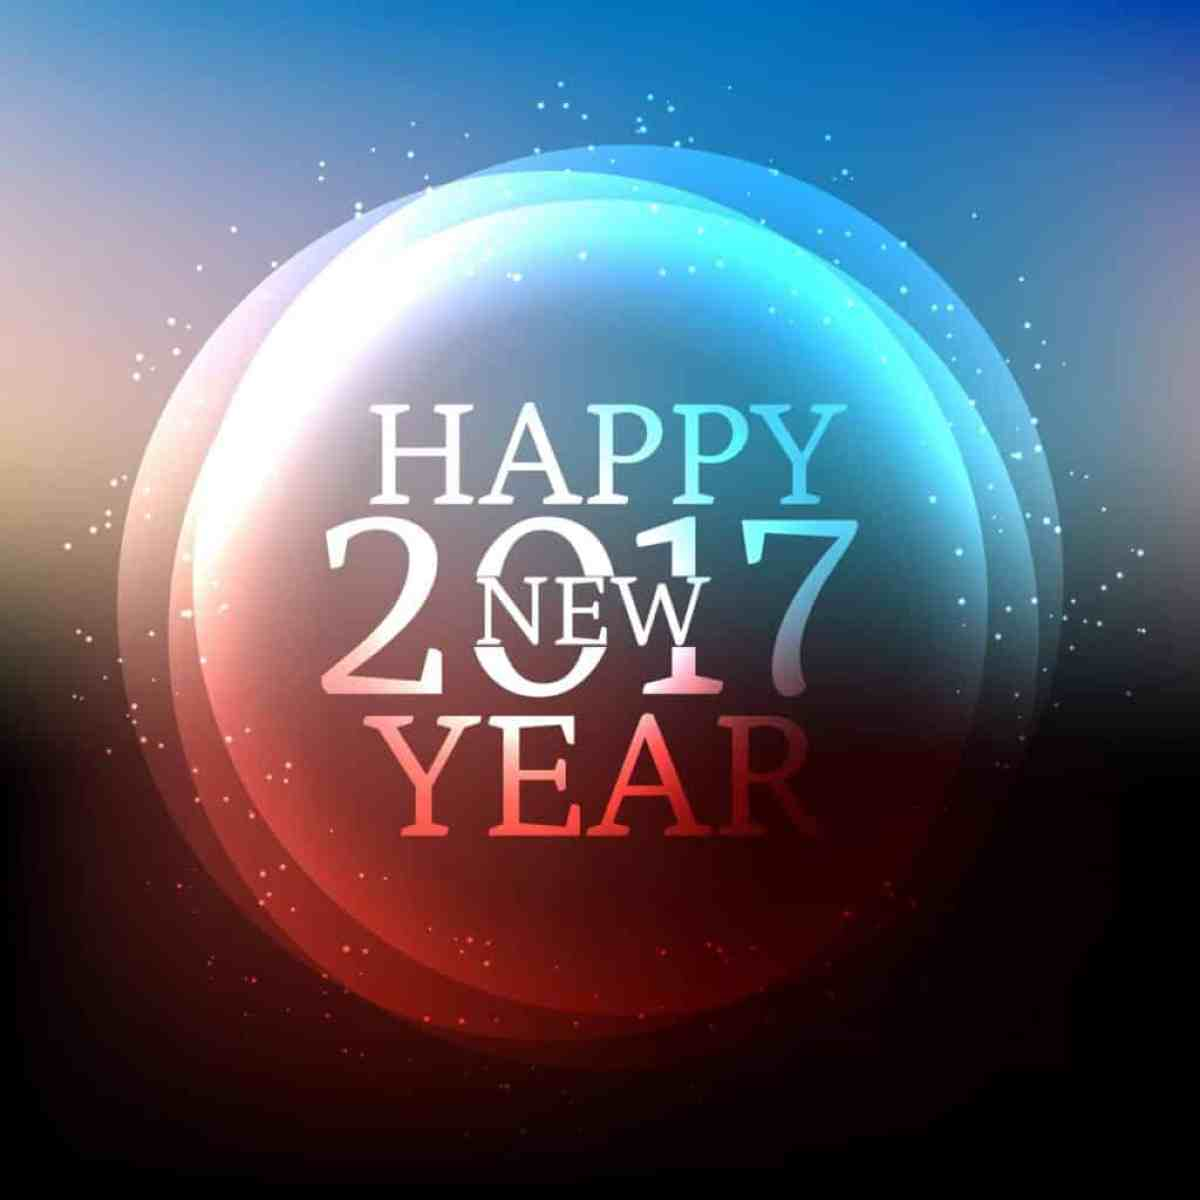 Happy New Year 2017 with shining frame